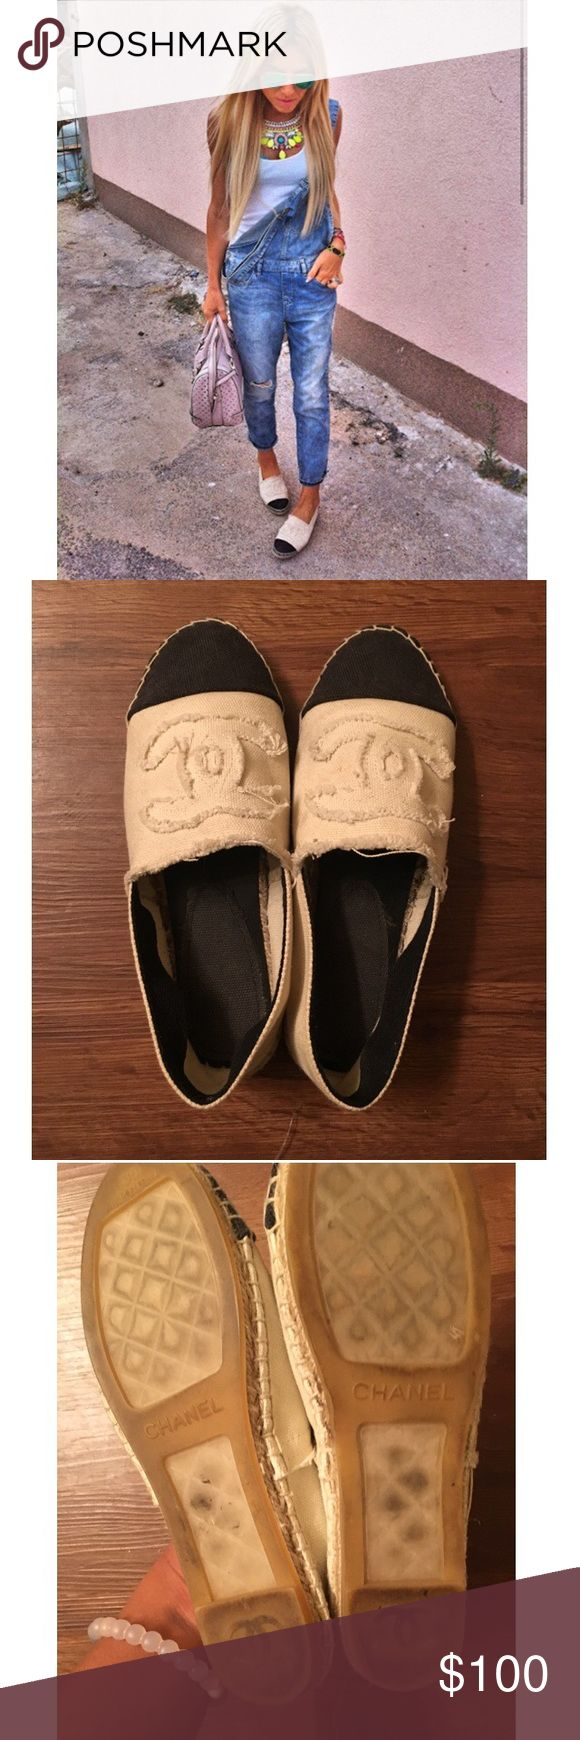 Chanel Espadrilles Really cute shoes that can be worn with many outfits. Price is low hence the authenticity. Comes with box and dust bags. Real shoes would retail over $700. No Trades. Price is negotiable. A little dirty not too bad can't really tell. CHANEL Shoes Espadrilles